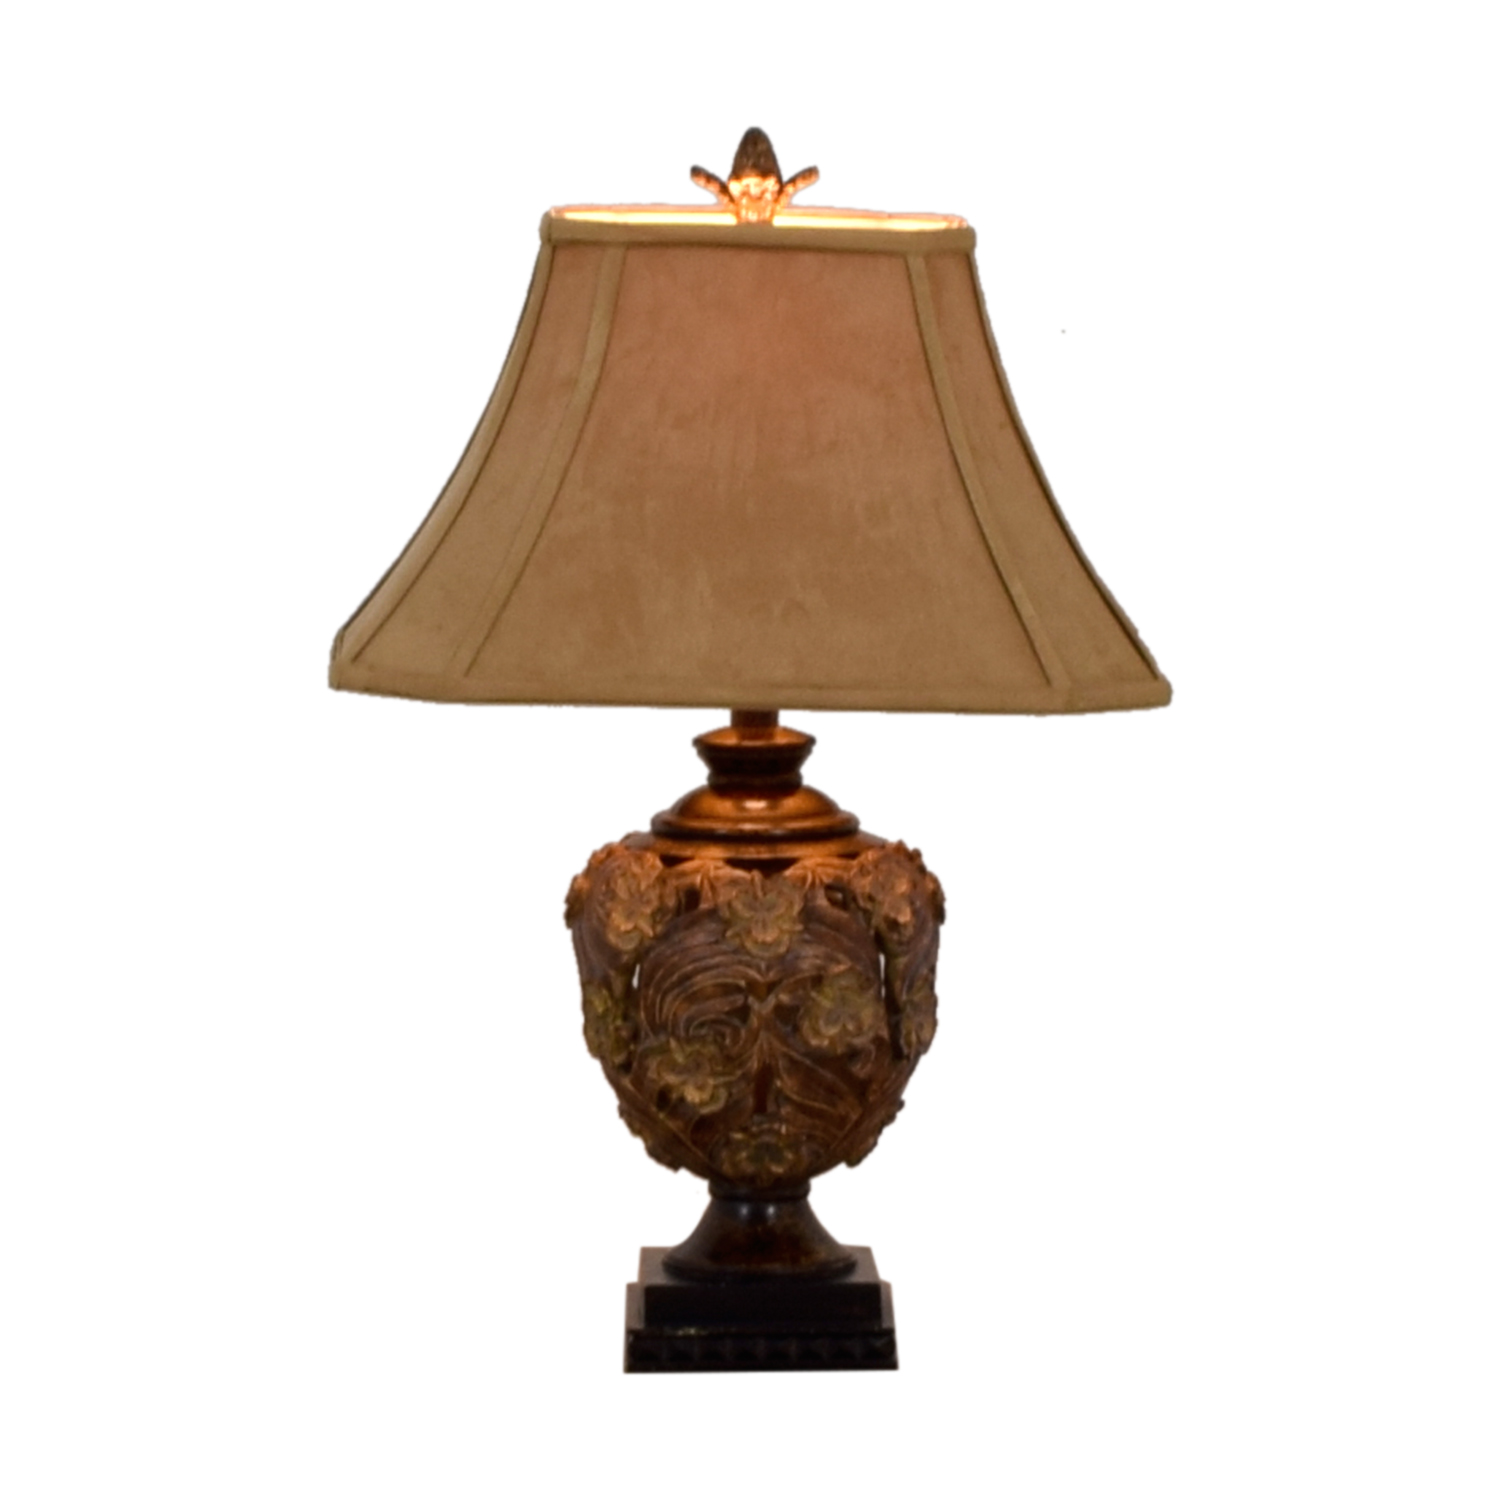 Golden Rose Table Lamp for sale